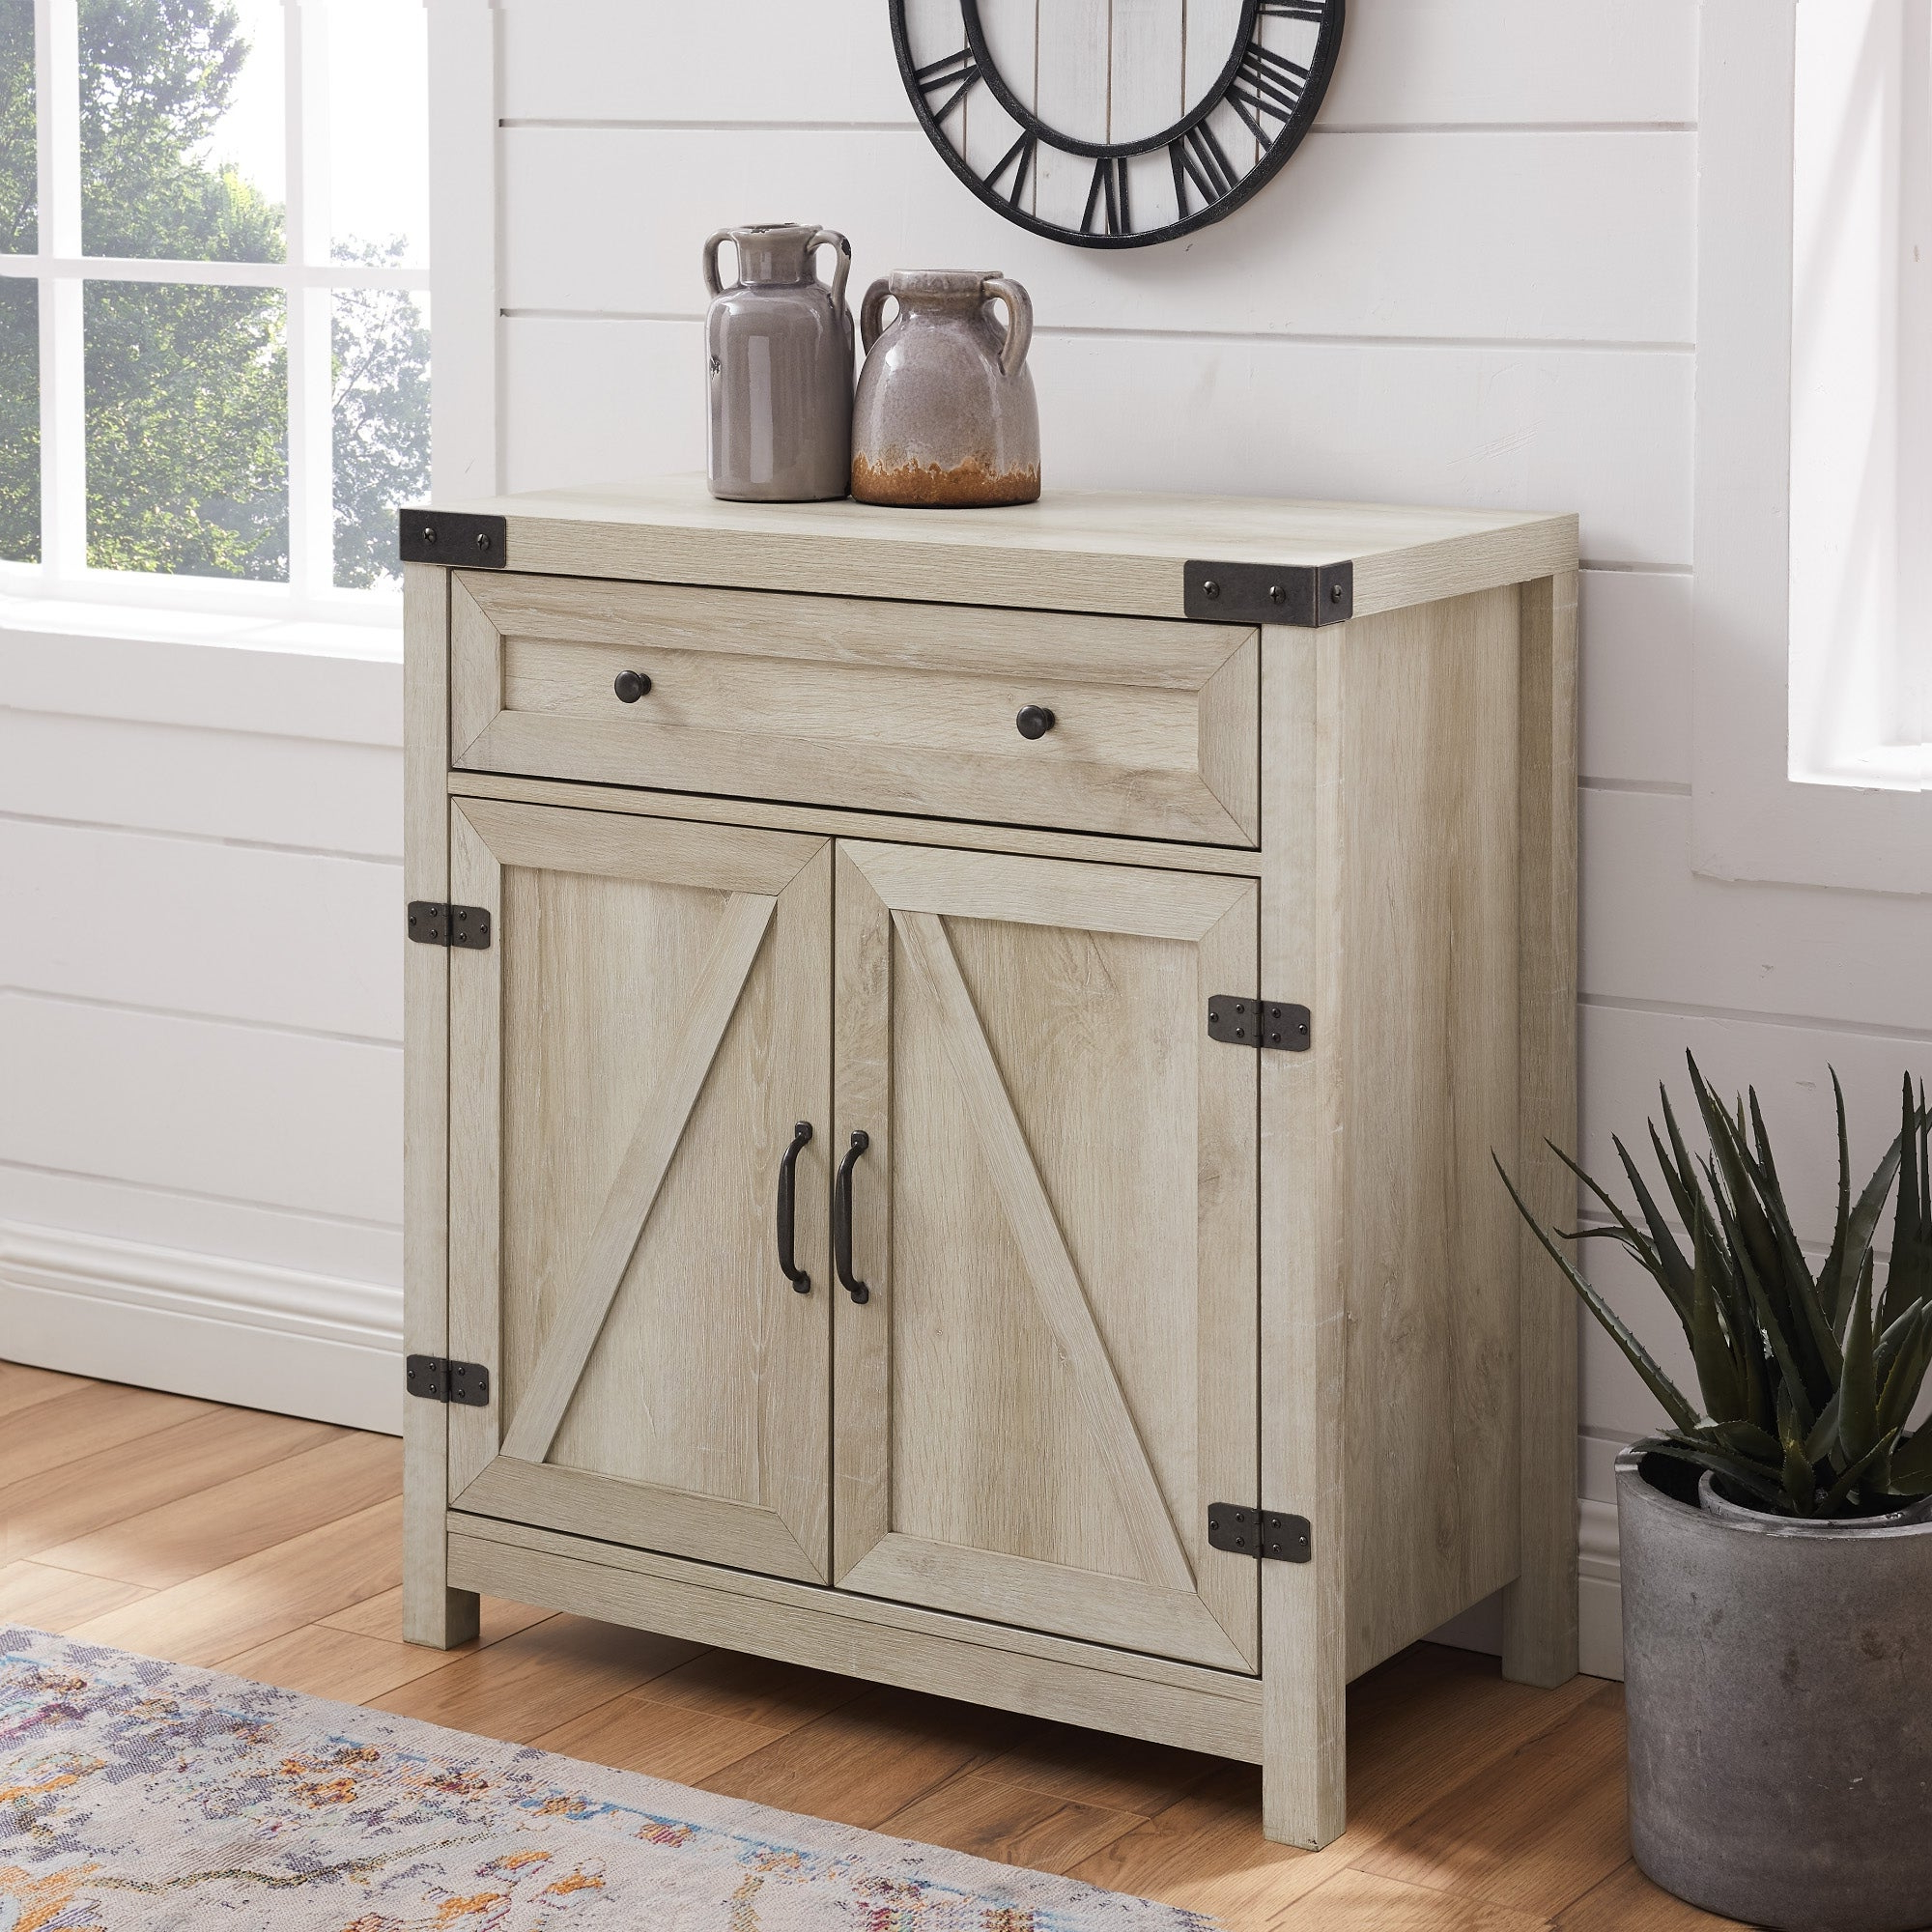 The Gray Barn 30 Inch Rustic Barn Door Accent Cabinet Inside Famous Tv Stands With Table Storage Cabinet In Rustic Gray Wash (View 9 of 10)